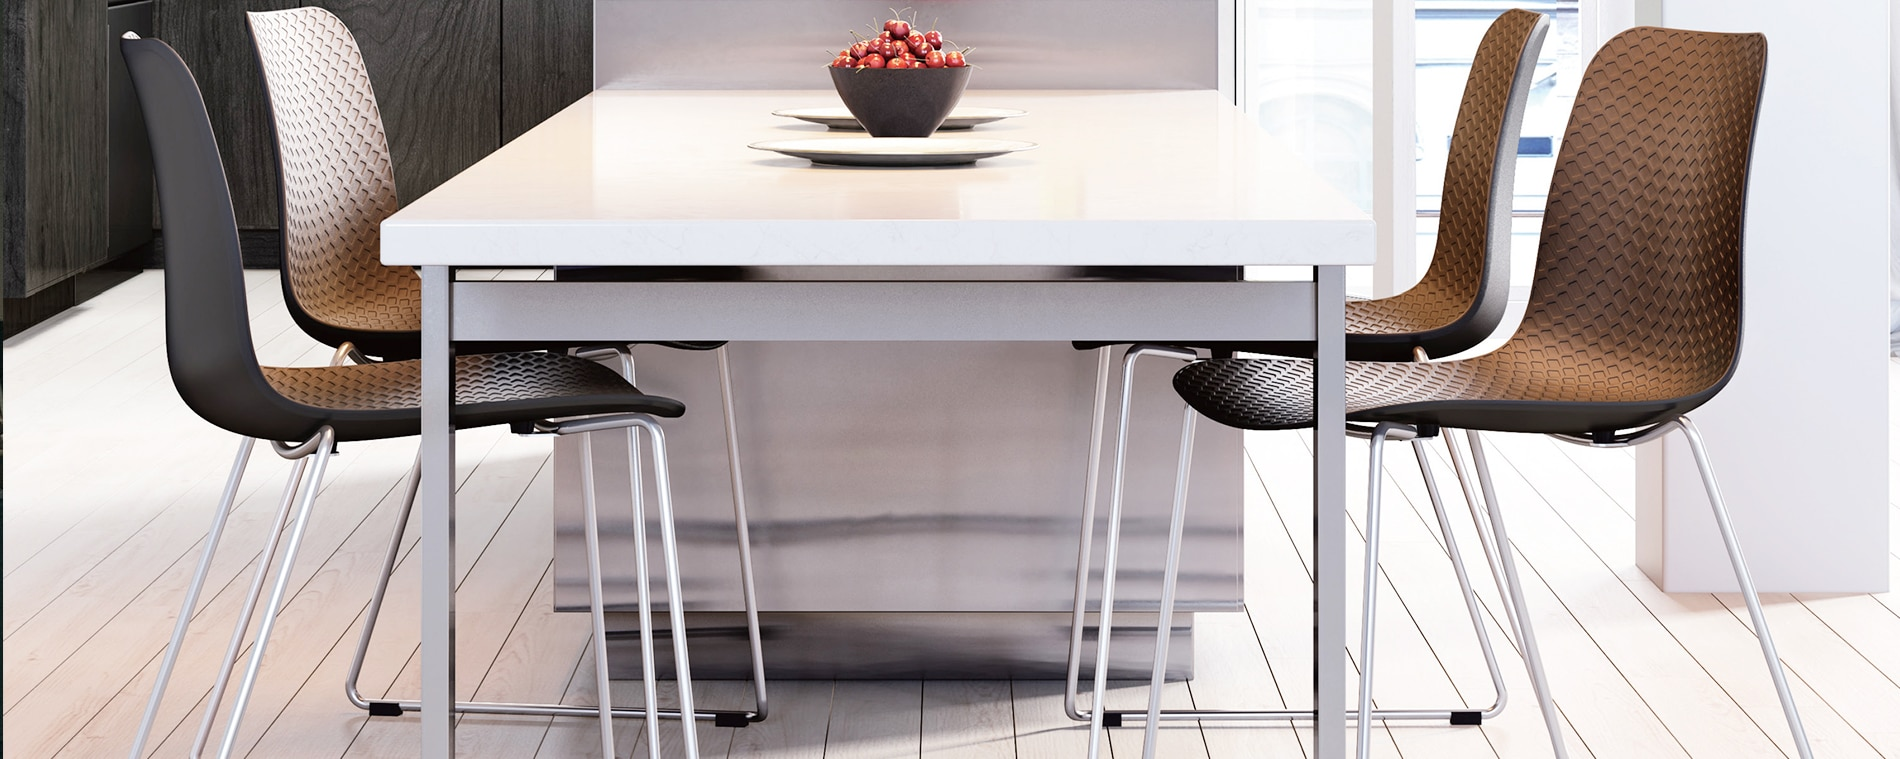 Carpone chair is a stylish addition to your cafe furniture